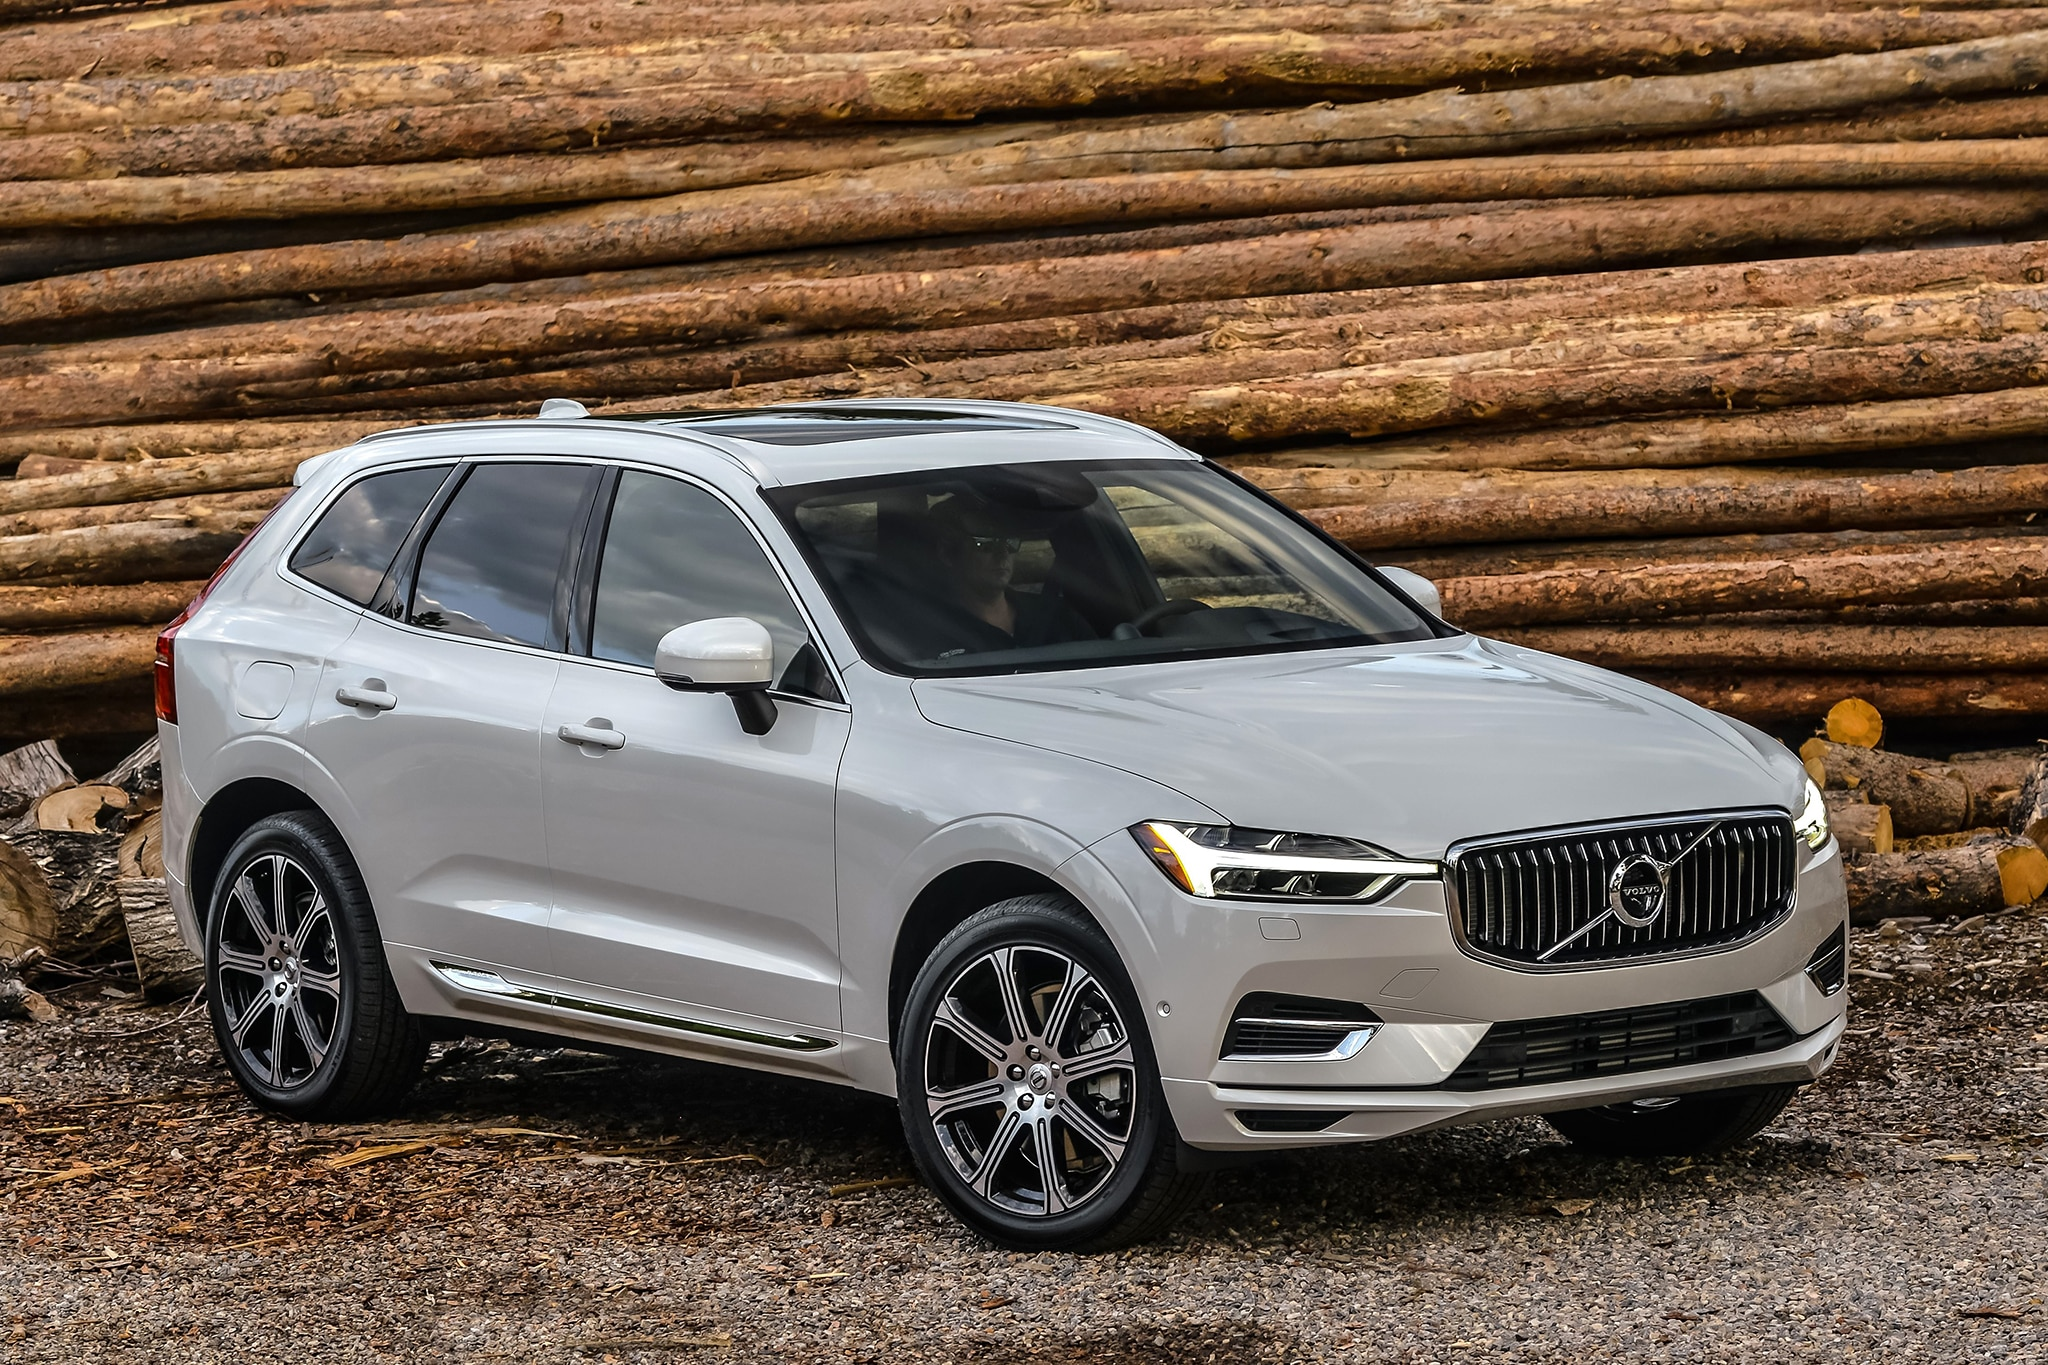 Swedes in Denver: We Drive the 2018 Volvo XC60, V90, and S90